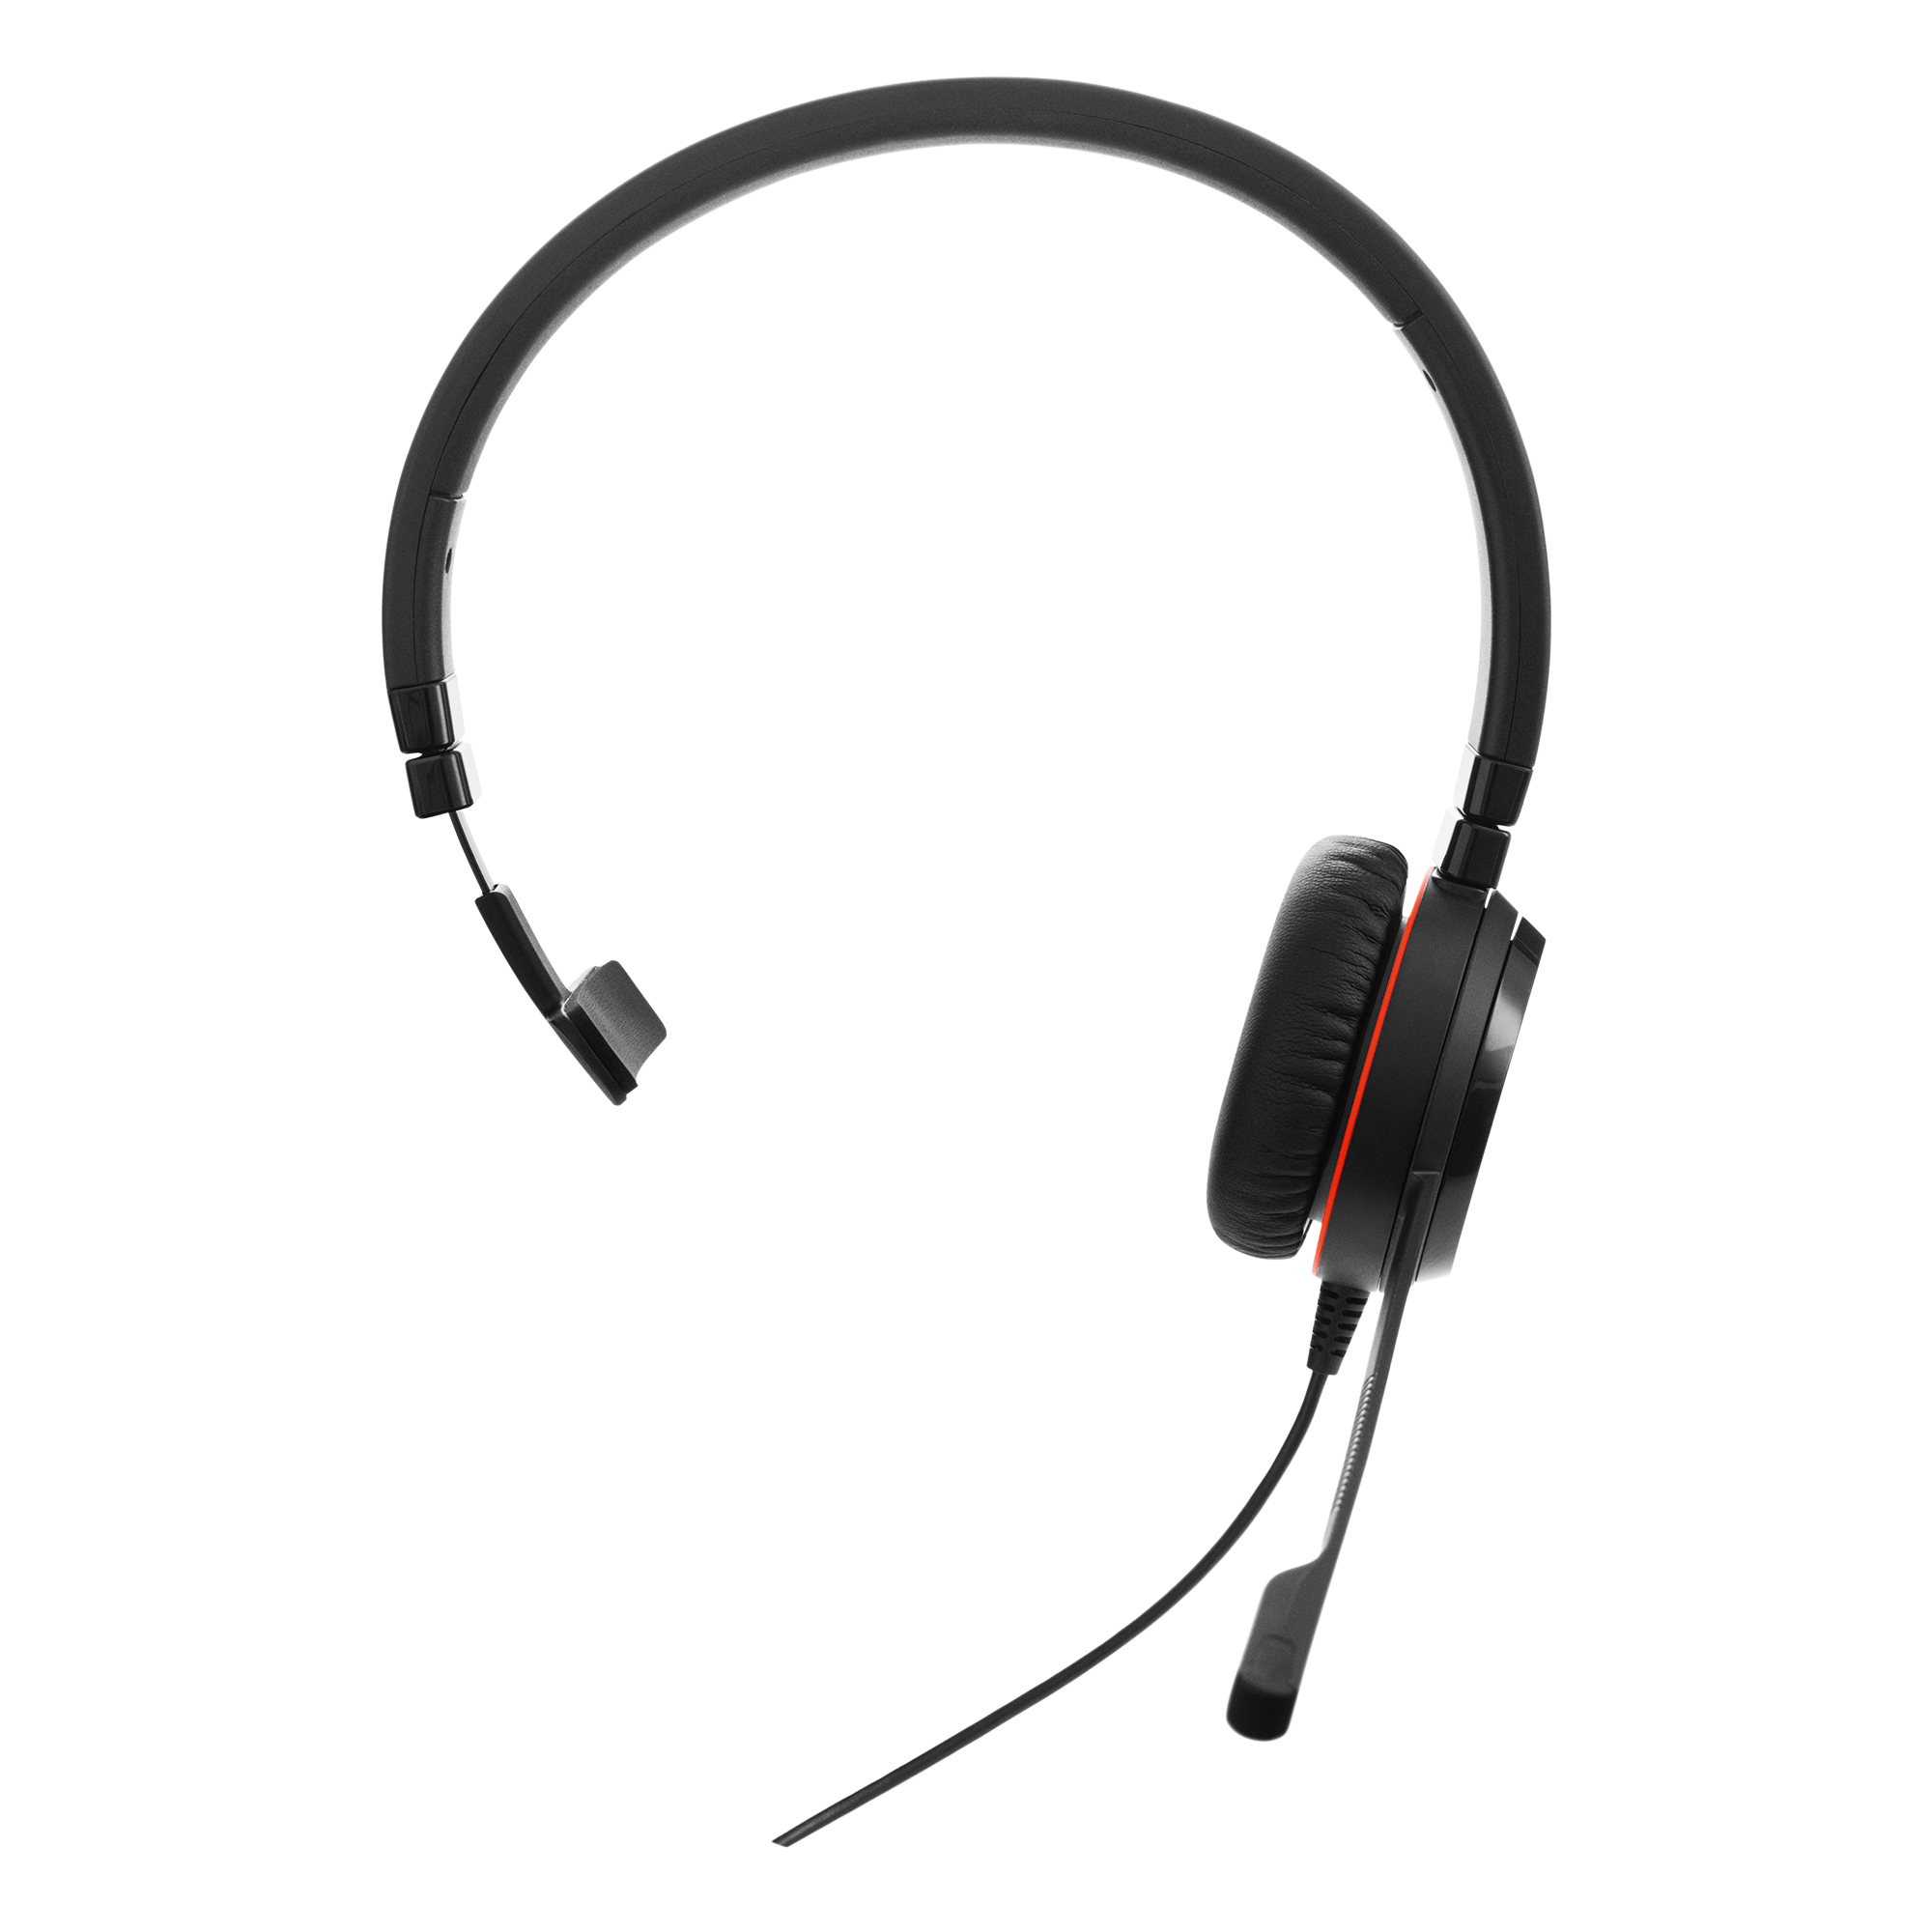 Phone headsets Jabra EVOLVE 30 II Mono USB Headset With Noise Cancelling Microphone Ref 5393-823-309